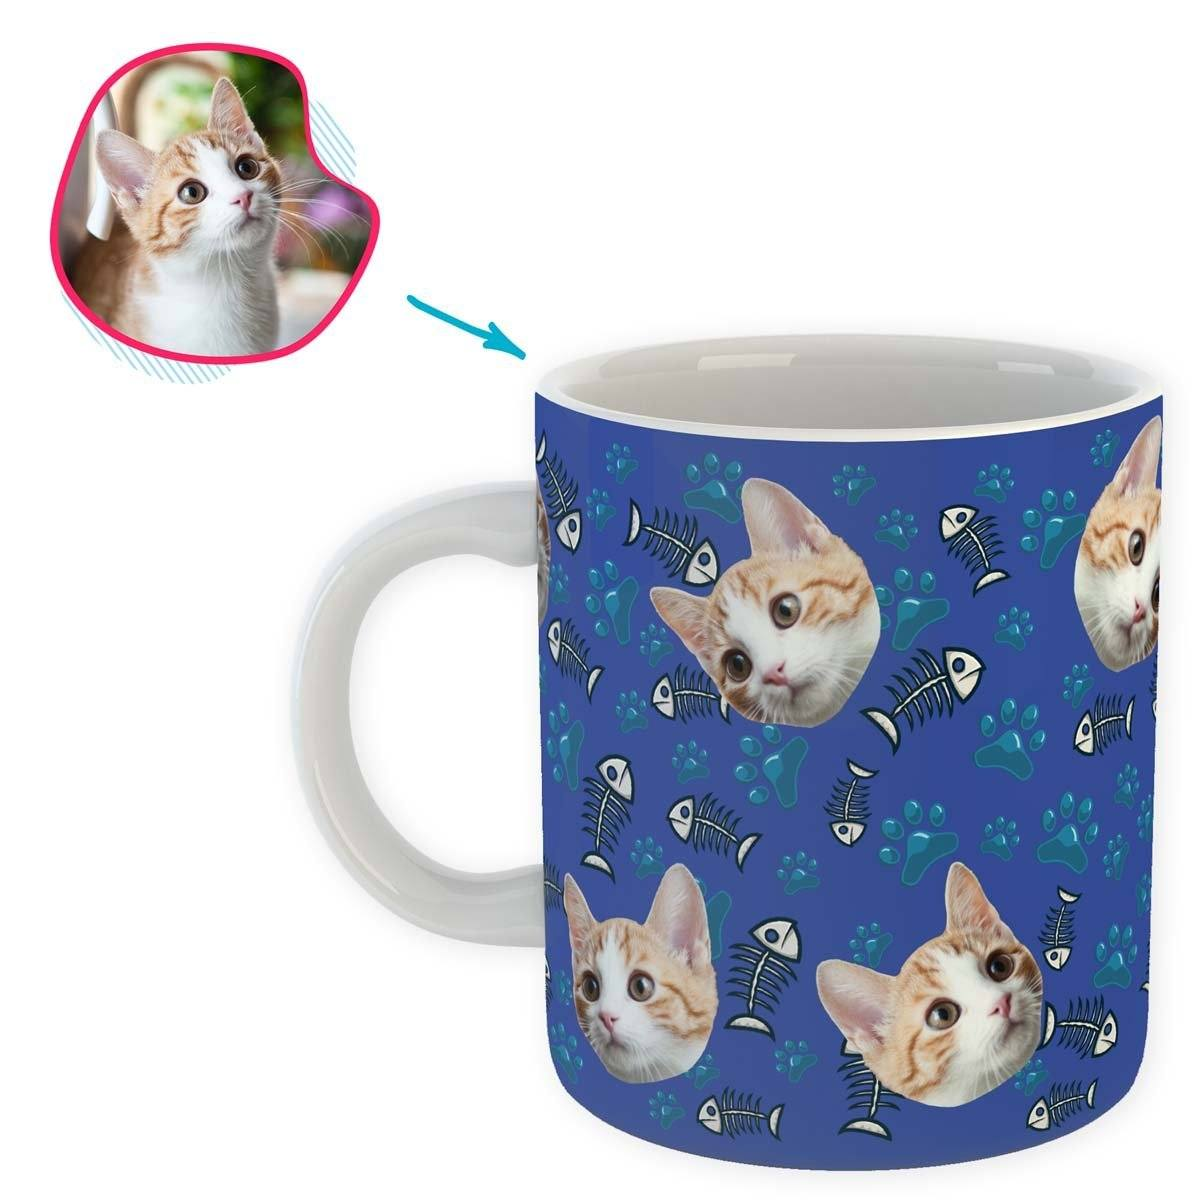 darkblue Cat mug personalized with photo of face printed on it